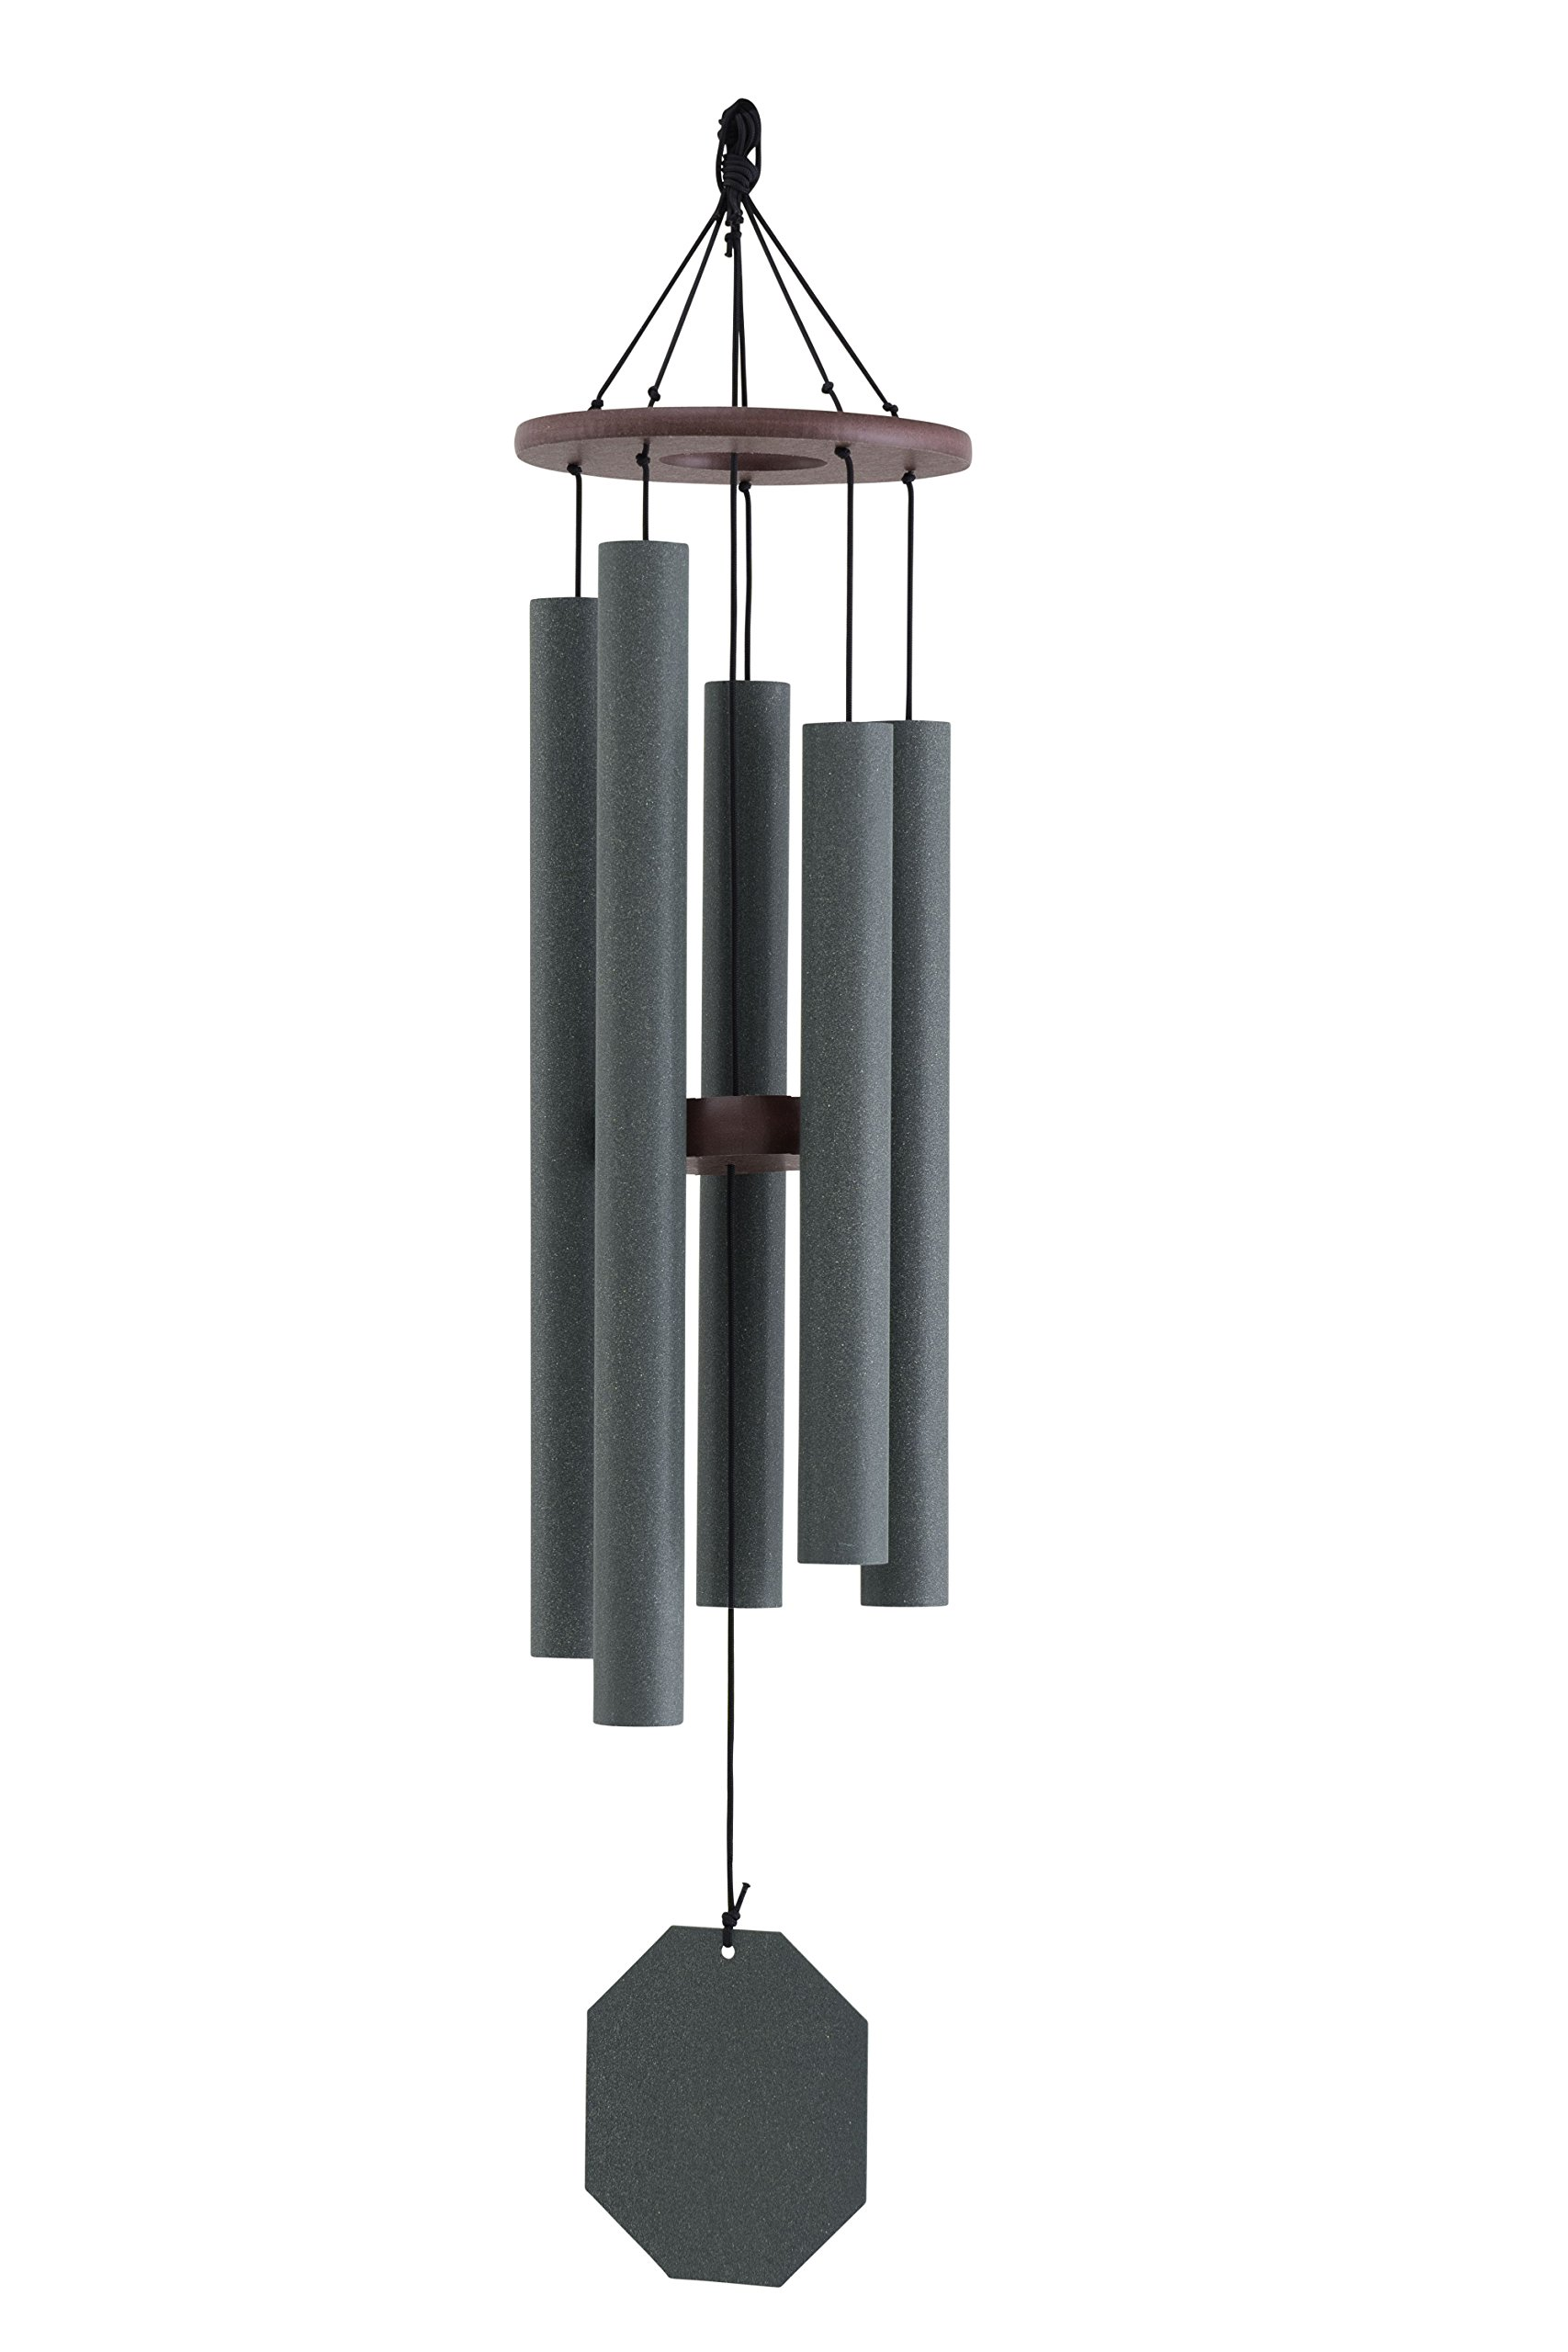 38'' Solar Singer Wind Chime - Amish Handcrafted